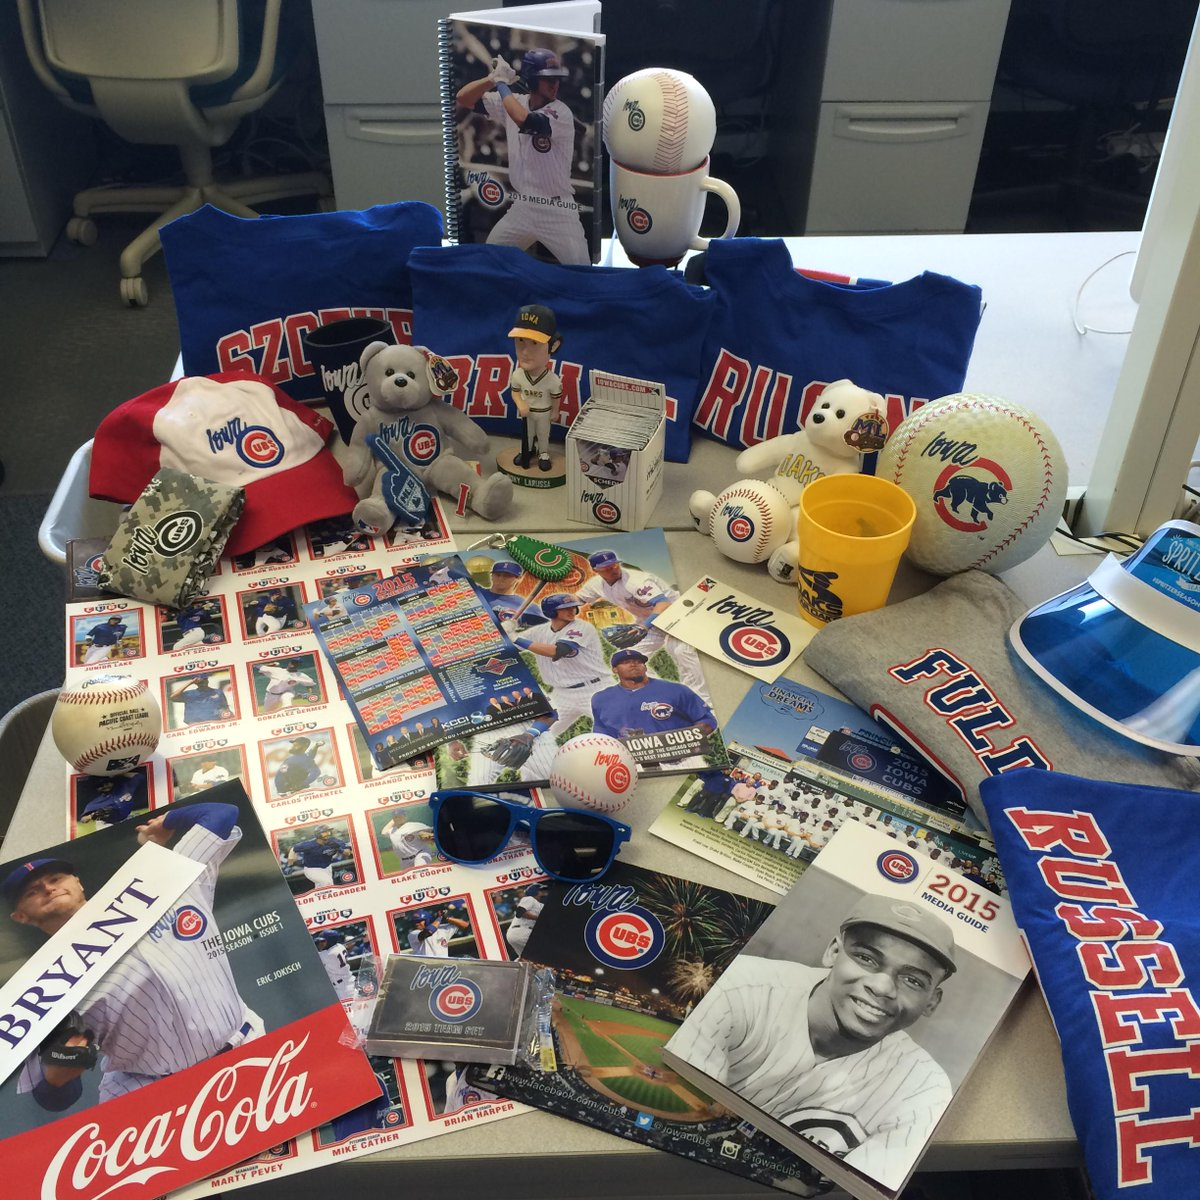 We're almost at 40,000 followers! Help us get there by giving us a RT to enter to win this 40-item prize pack! http://t.co/i9YfHPKyvR